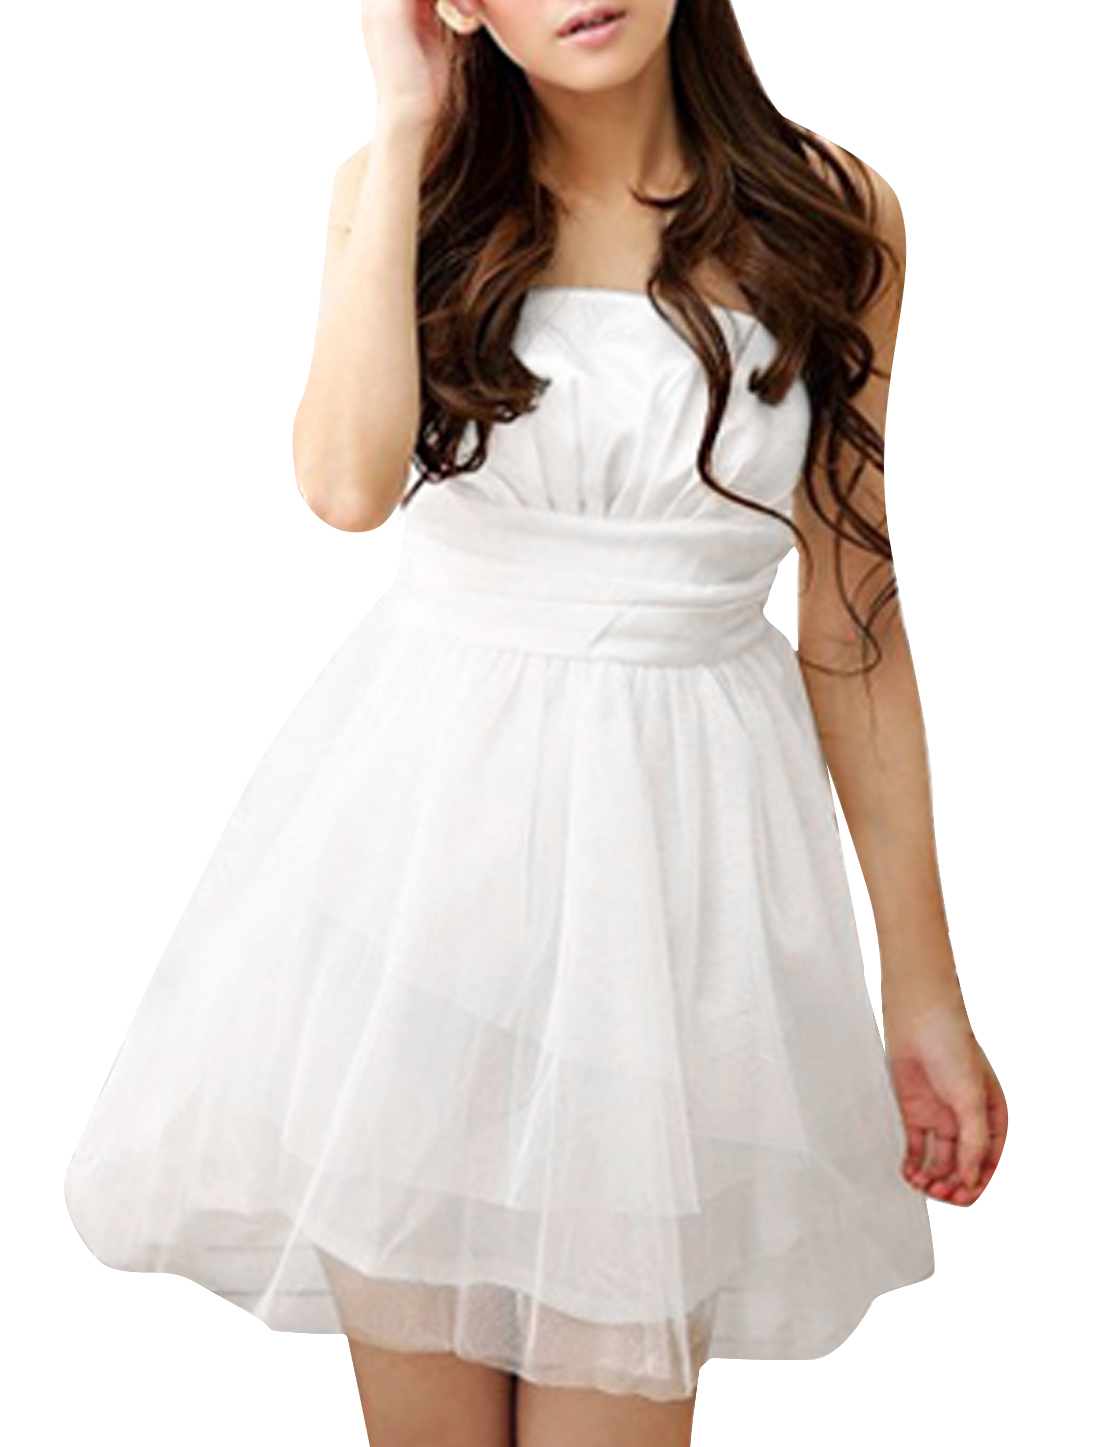 Ladies Chic Strapless Design Pure White Mini Ball Gown Dress S